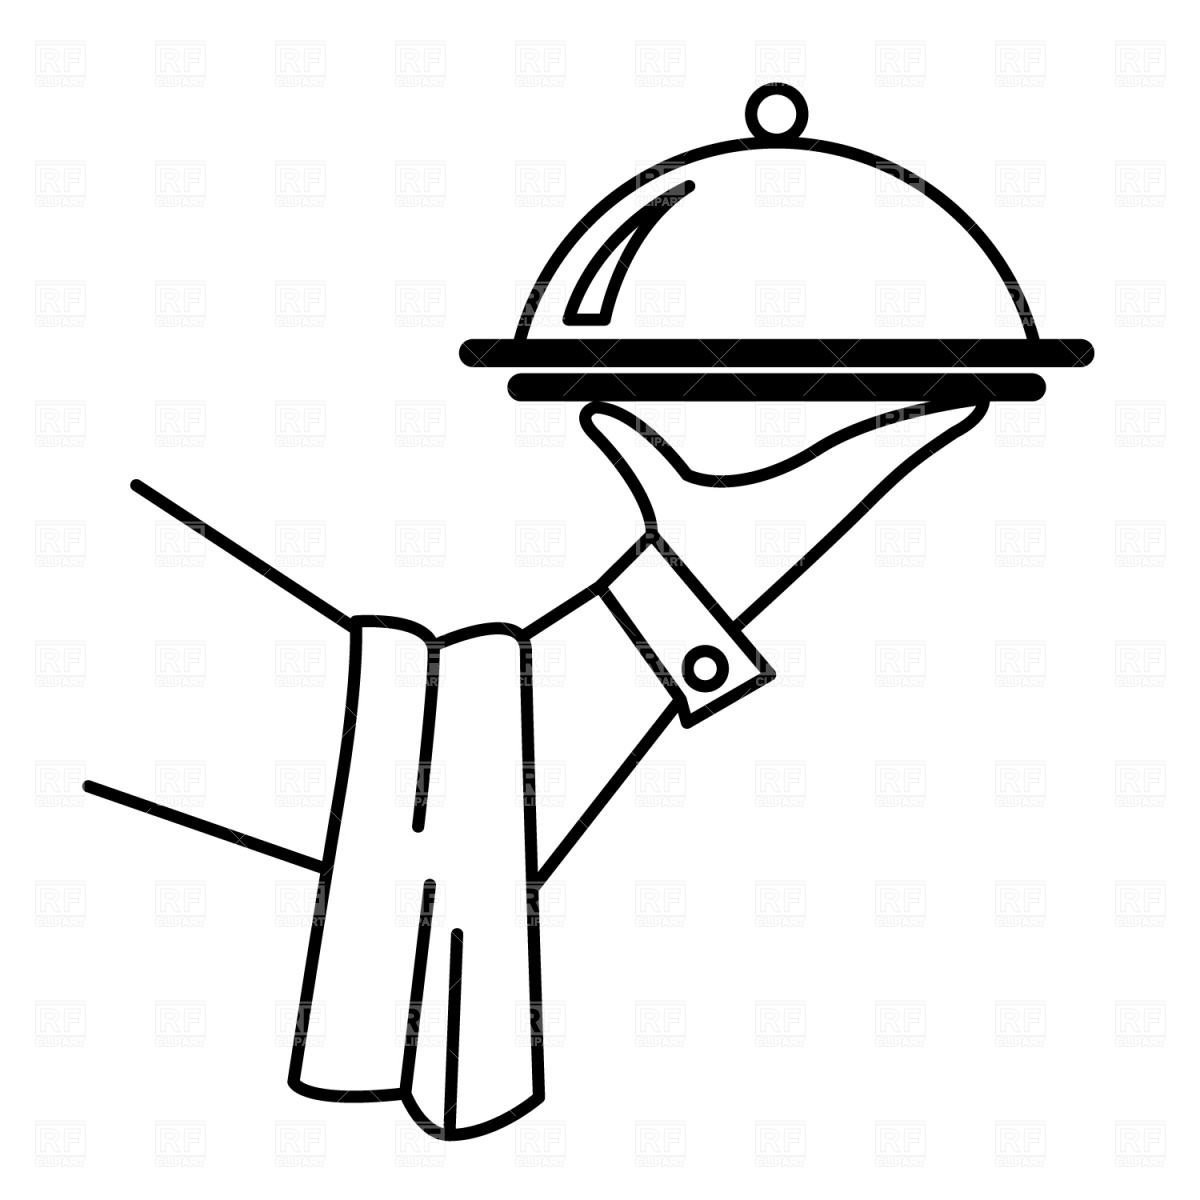 Directors clipart images amp pictures becuo - Complimentary Members Lunch At Goddard House With Chef Presentation October 6 2017